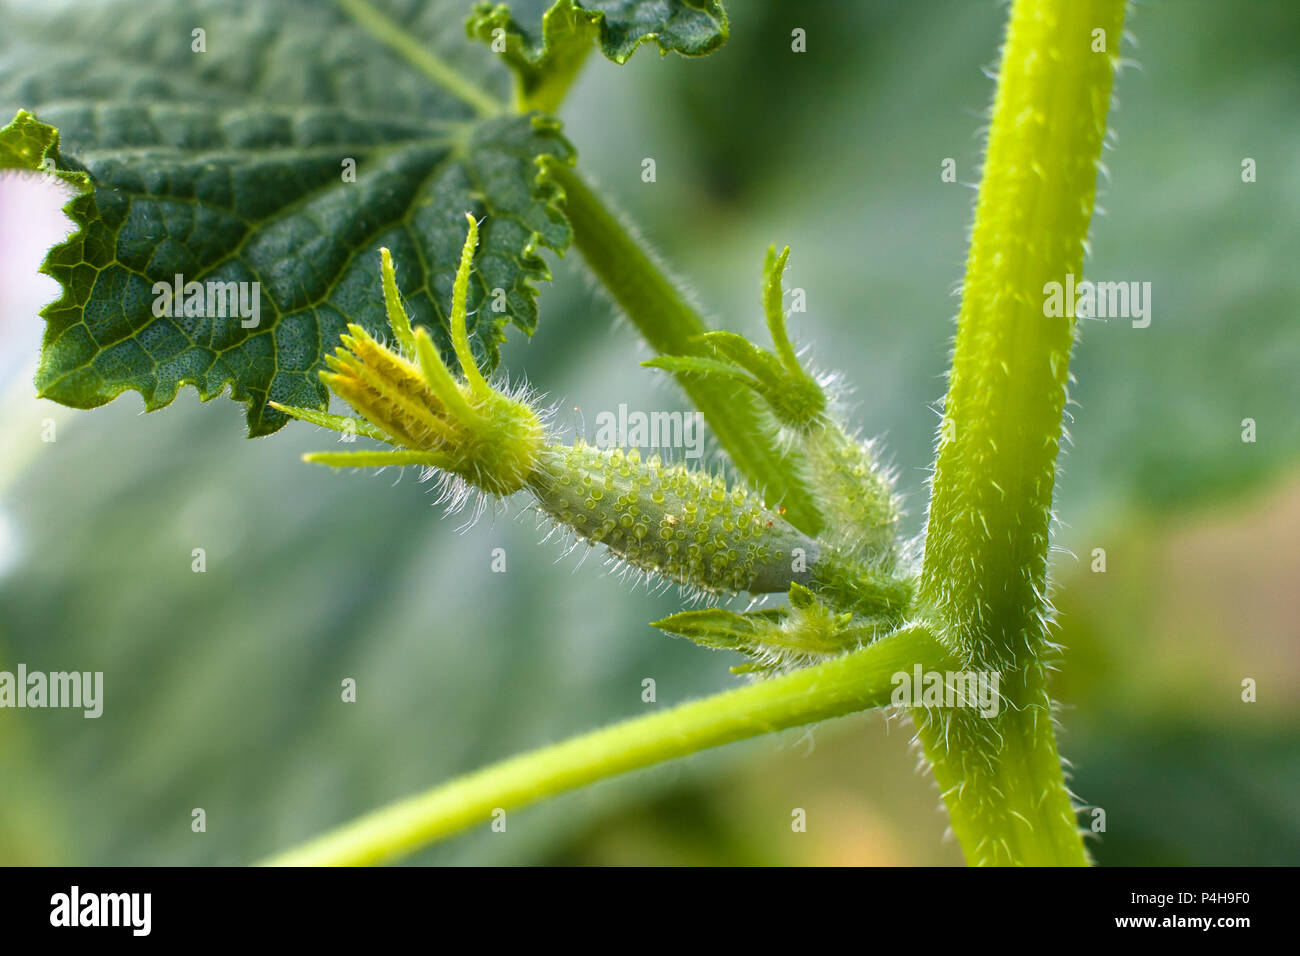 Vegetable Bud Stock Photos & Vegetable Bud Stock Images - Alamy